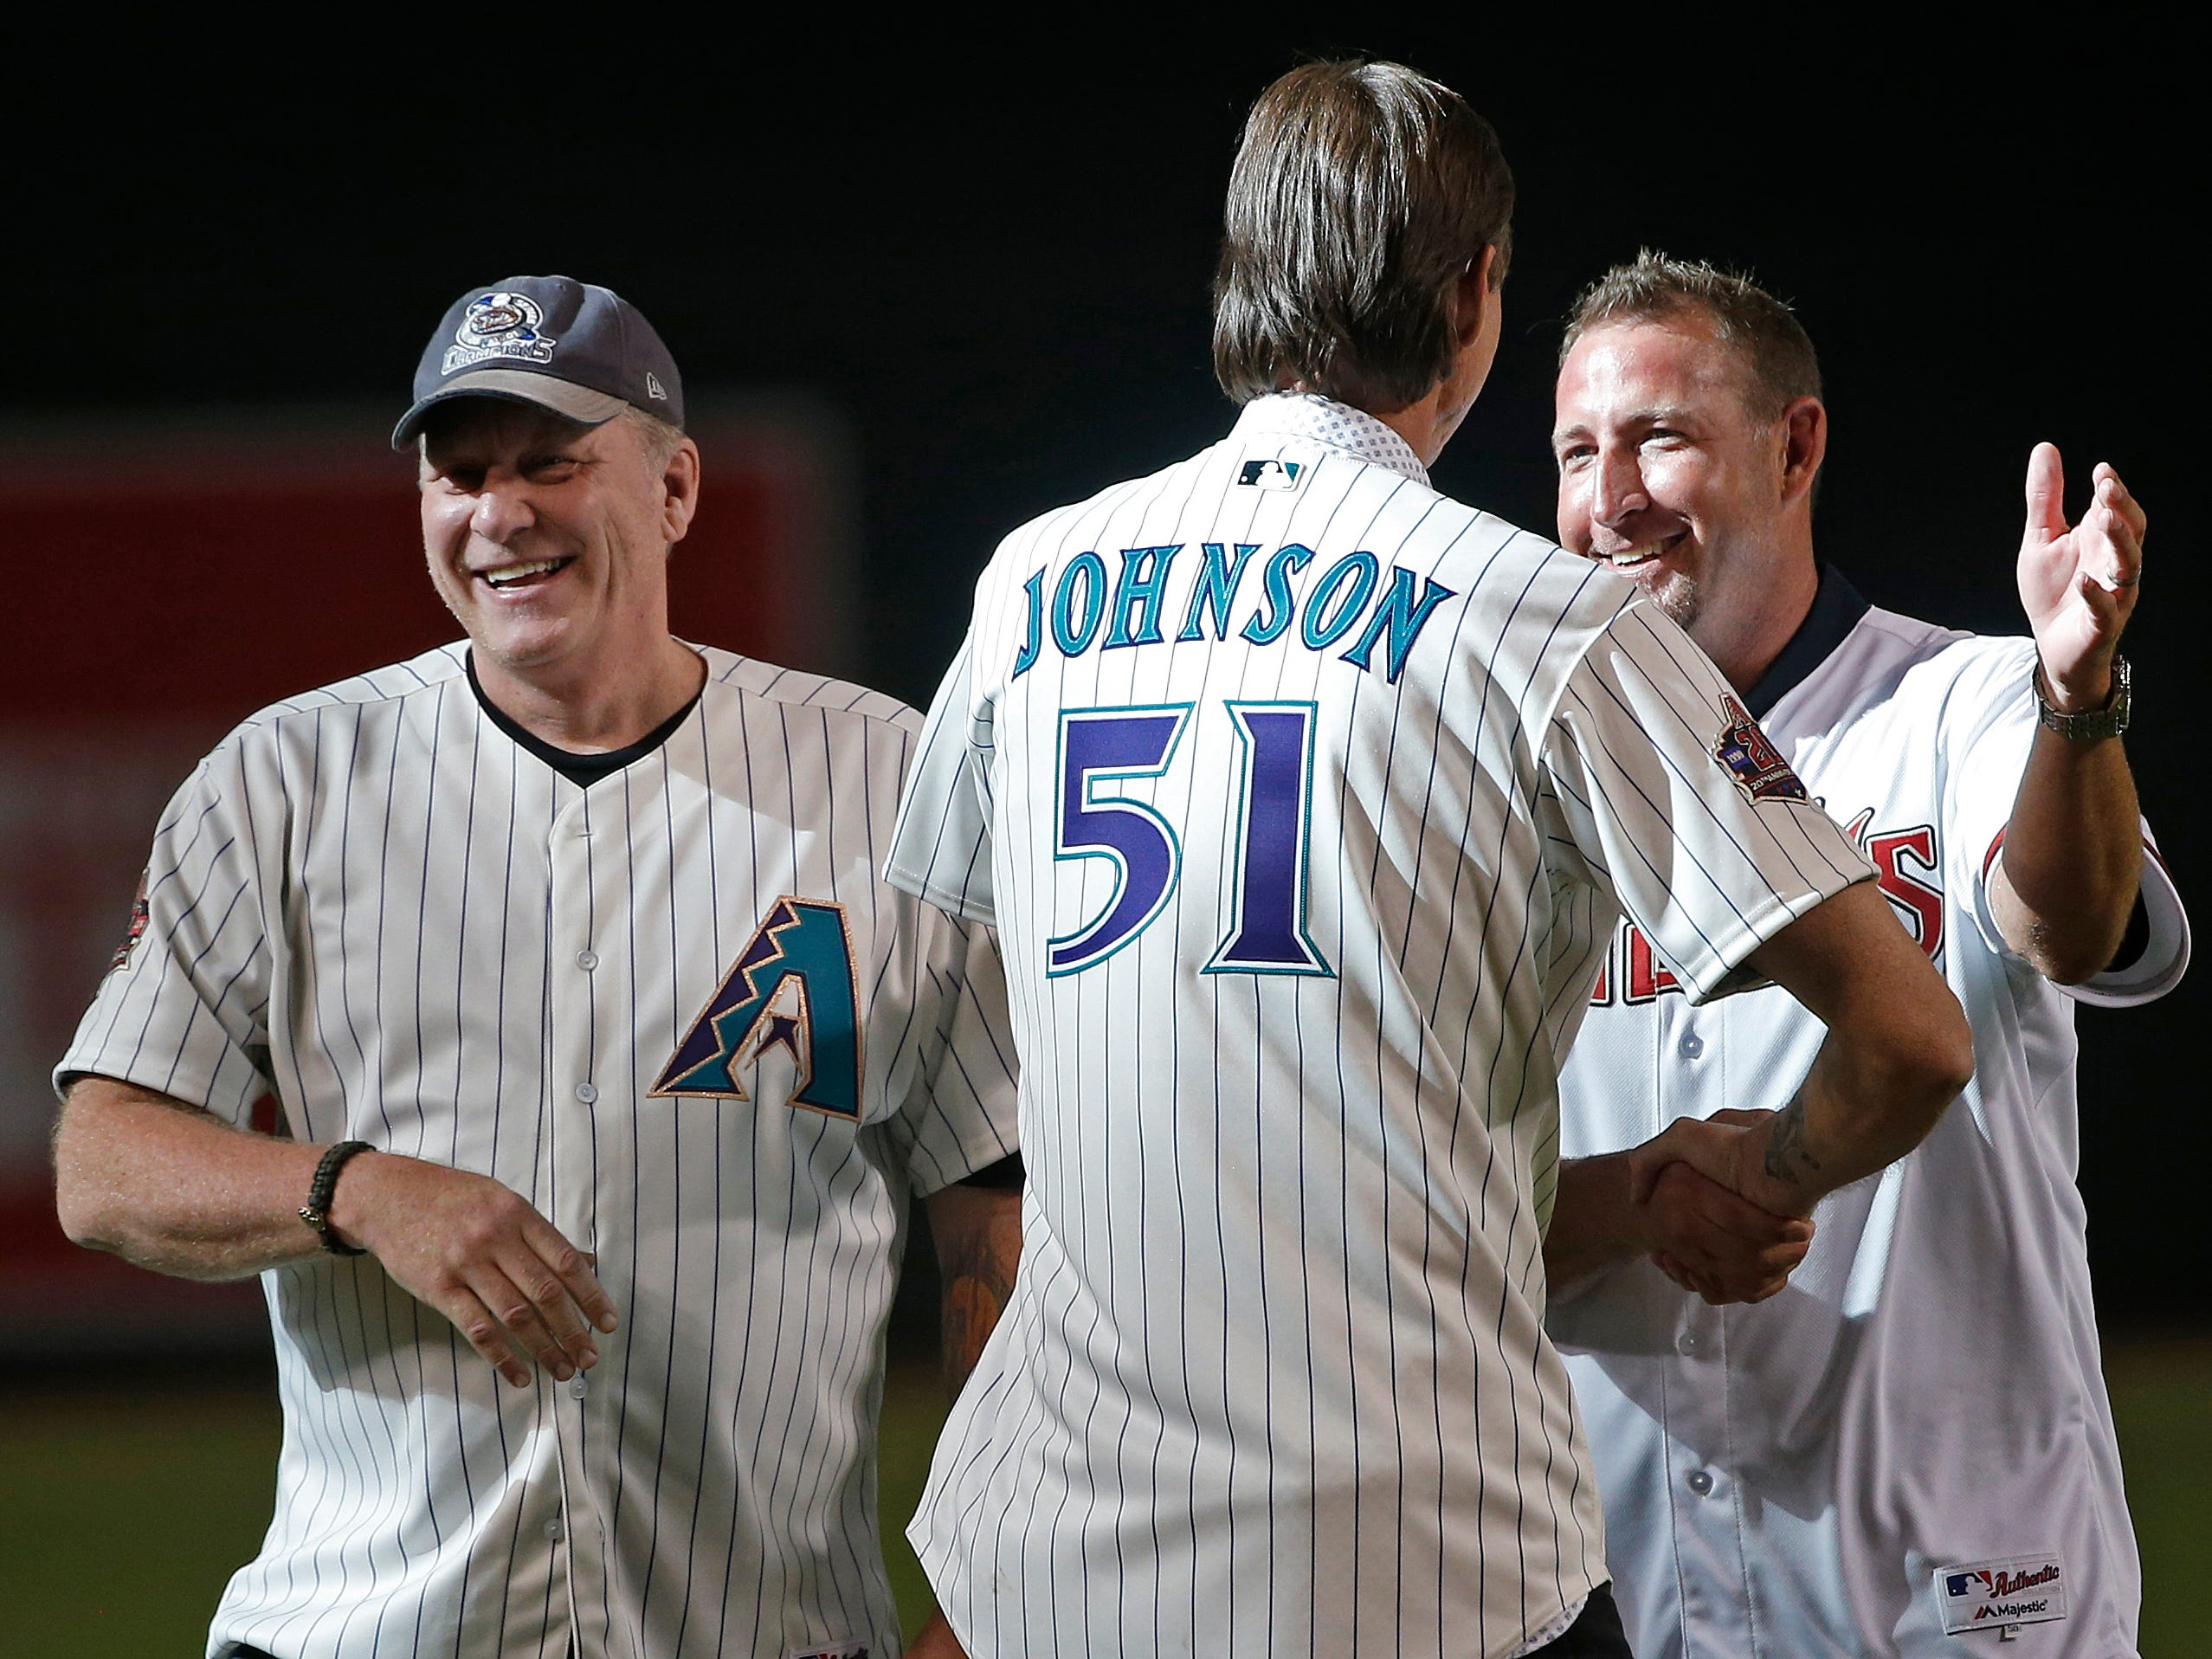 Diamondbacks Randy Johnson (51) greets pitcher Brandon Webb (R) and Curt Schilling (L) as the group was chosen for the Diamondbacks 20th Anniversary team prior to a Diamondbacks game at Chase Field in Phoenix, Ariz. on Aug. 4, 2018.